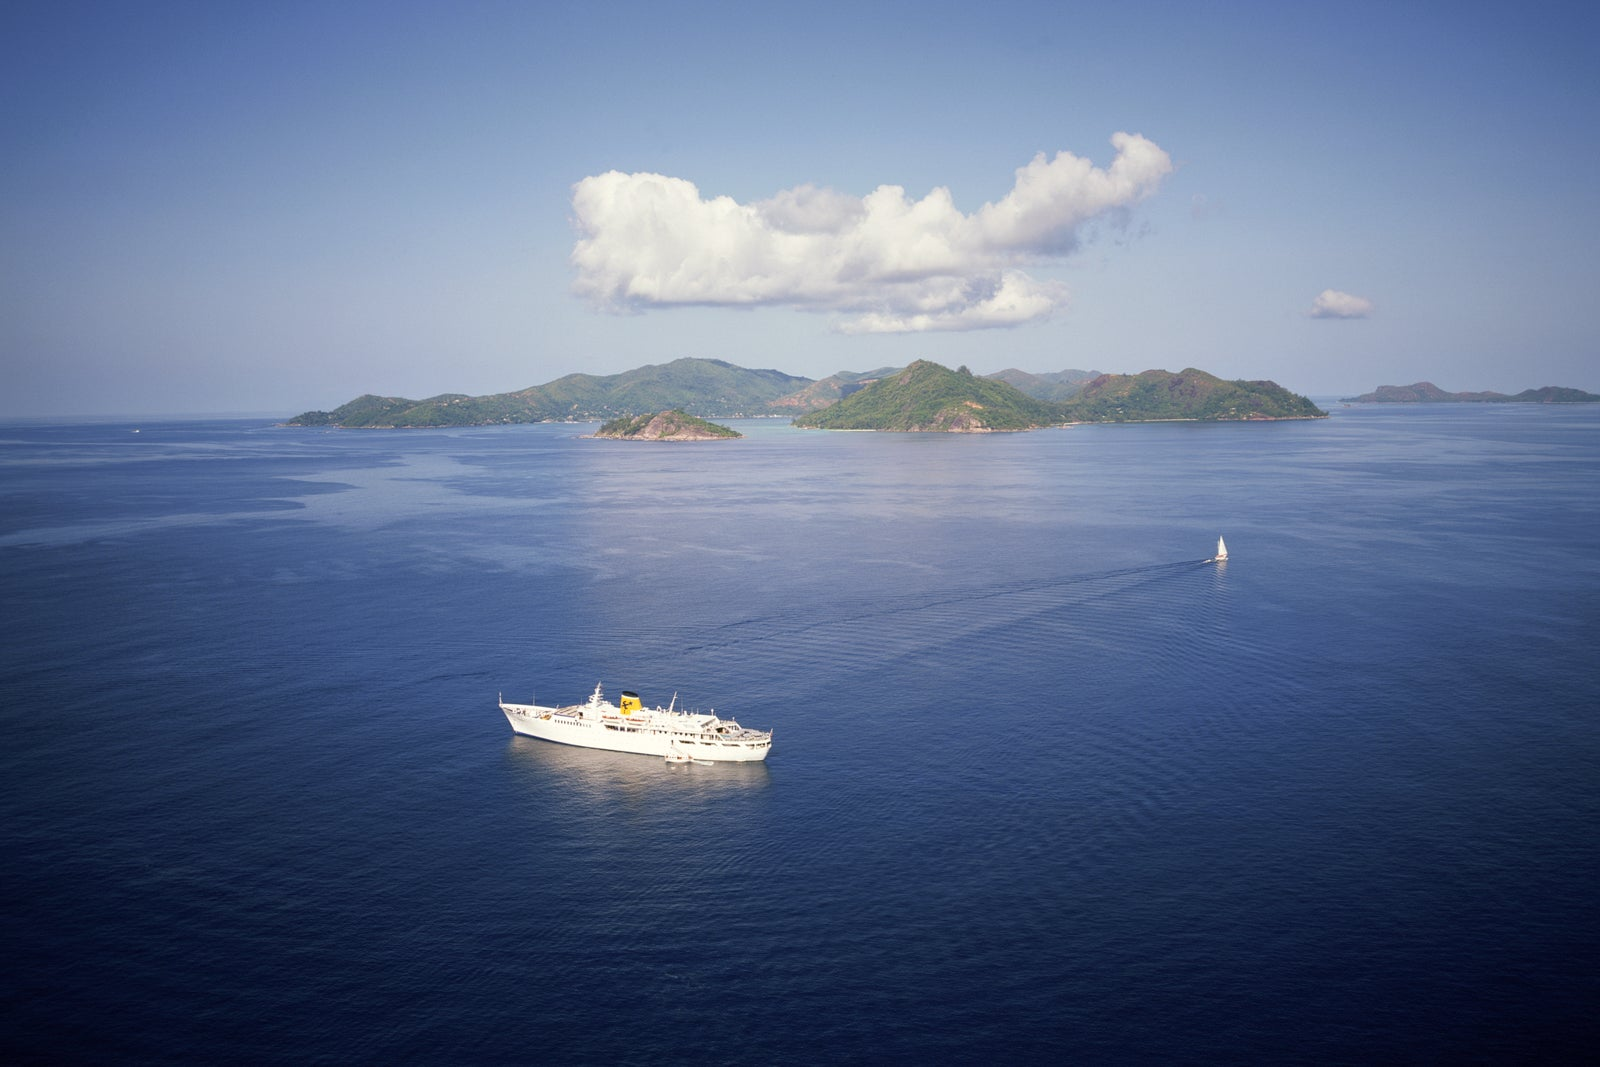 Traveling fully vaccinated? Seychelles will waive your quarantine requirement